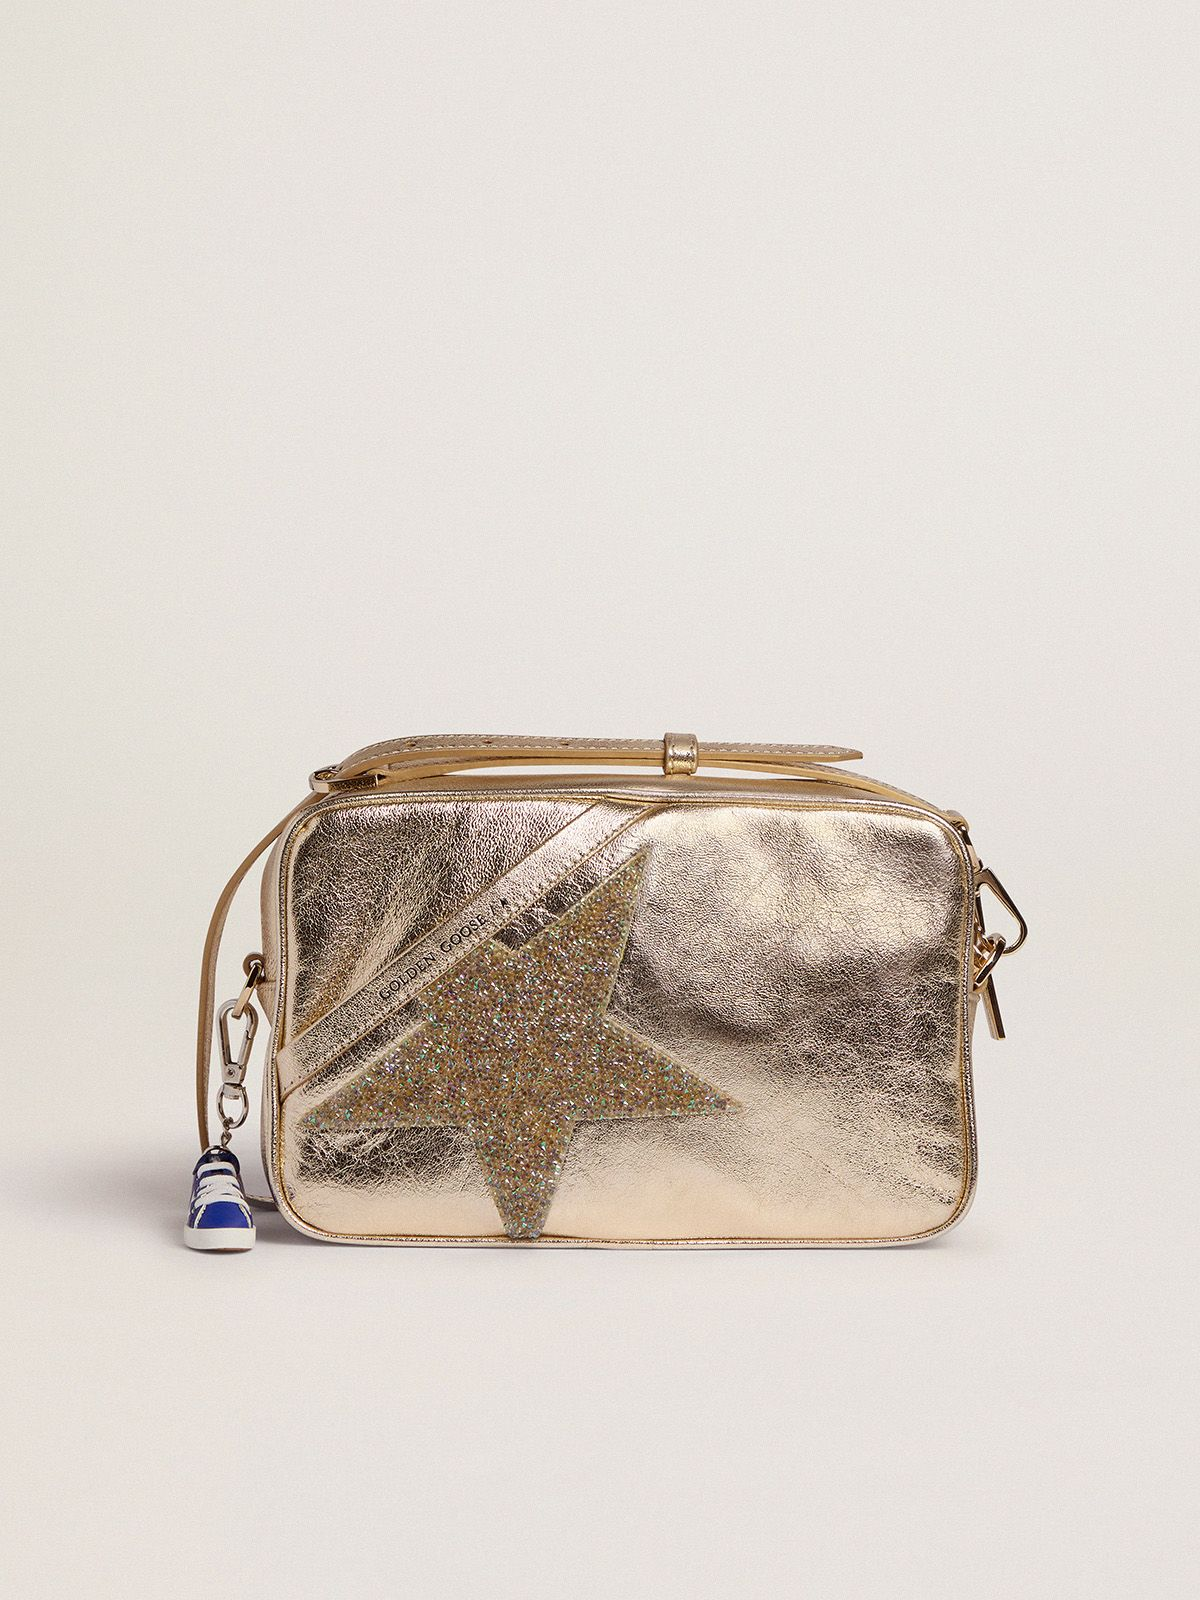 Golden Star Bag made of laminated leather with Swarovski star